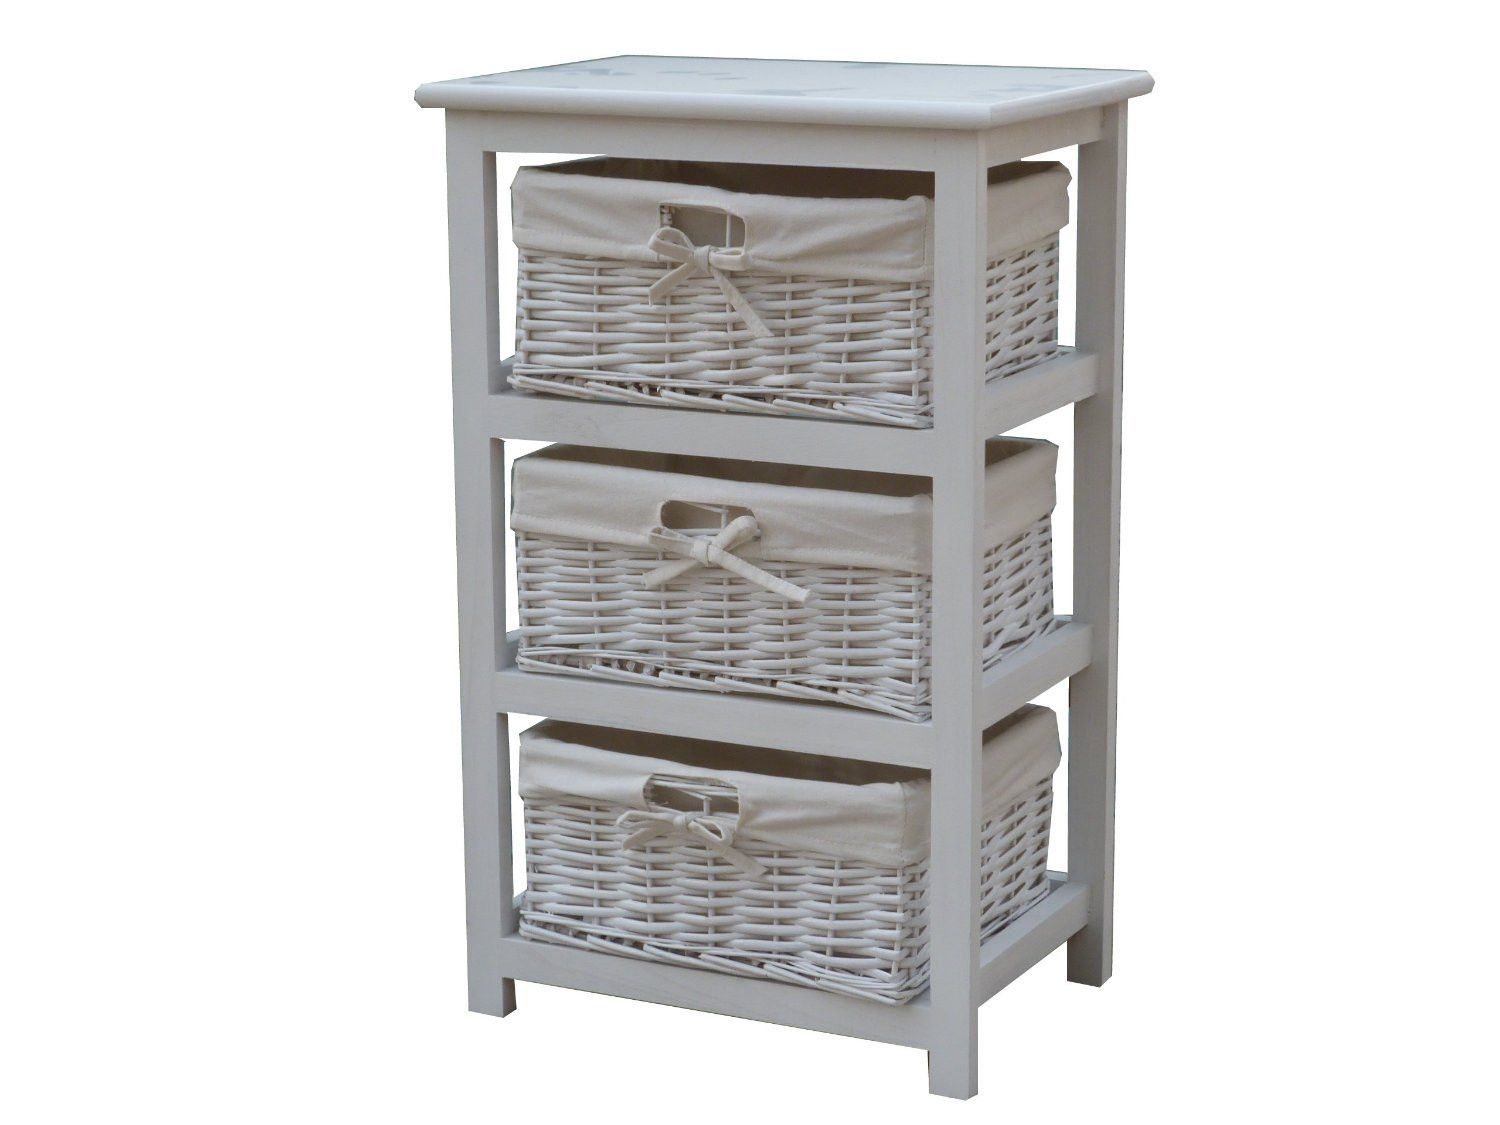 2019 wooden storage cabinets with baskets kitchen decor theme